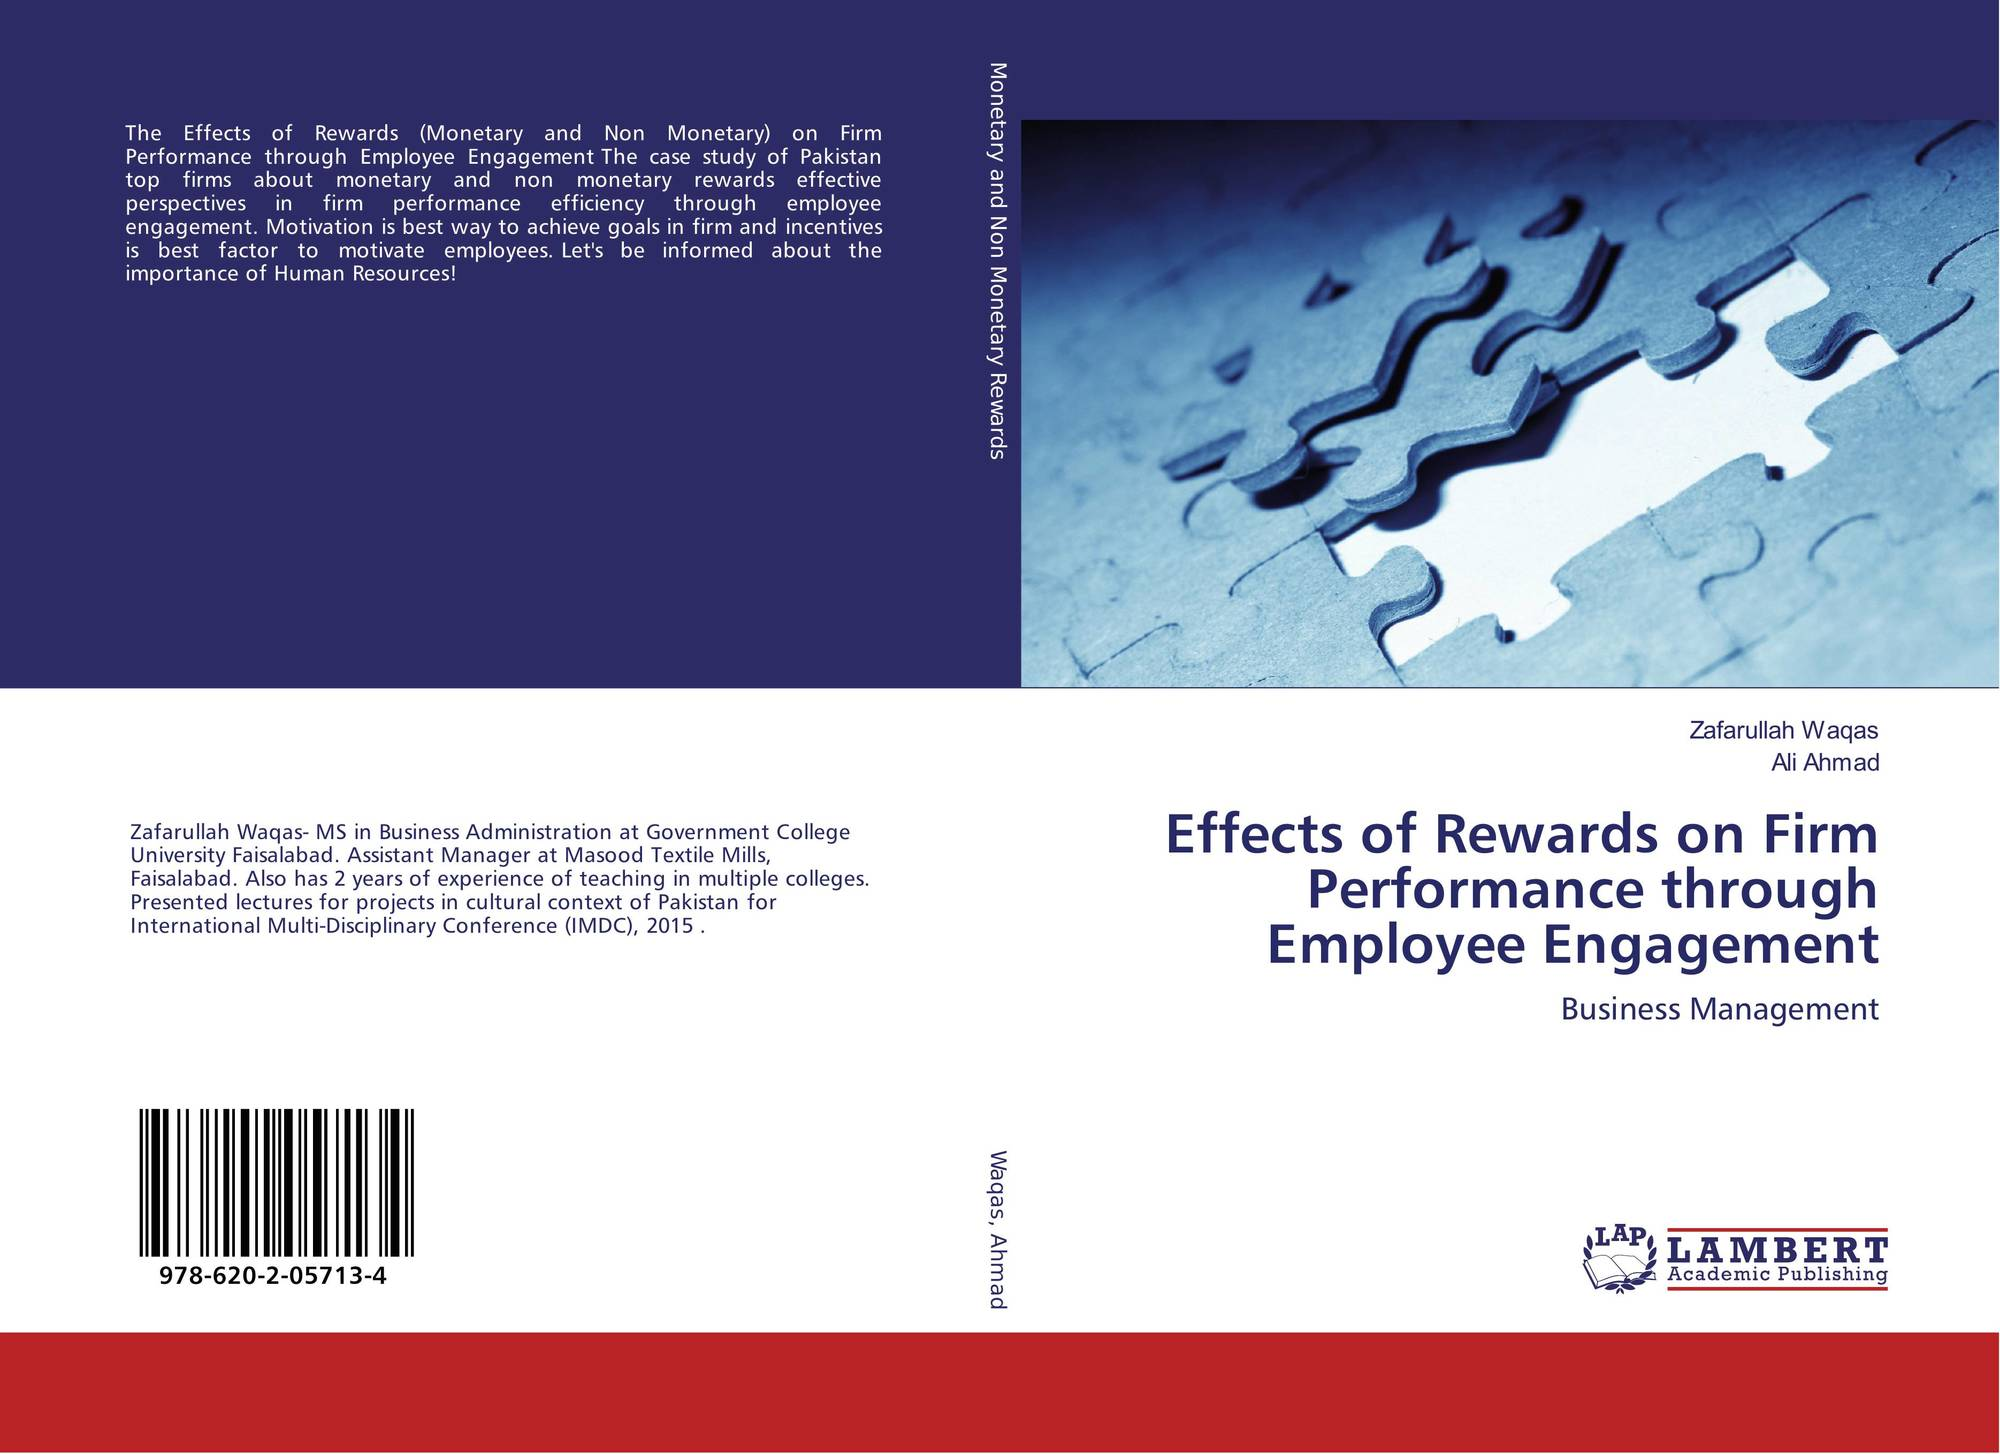 effects of non monetary rewards on employee Just like with monetary rewards, nonmonetary rewards should be based on accurate definitions and measurement of employee performance (principle #1), contingent on performance (principle #2), provided in a timely manner (principle #3), and the reward systems must be just (principle #4.